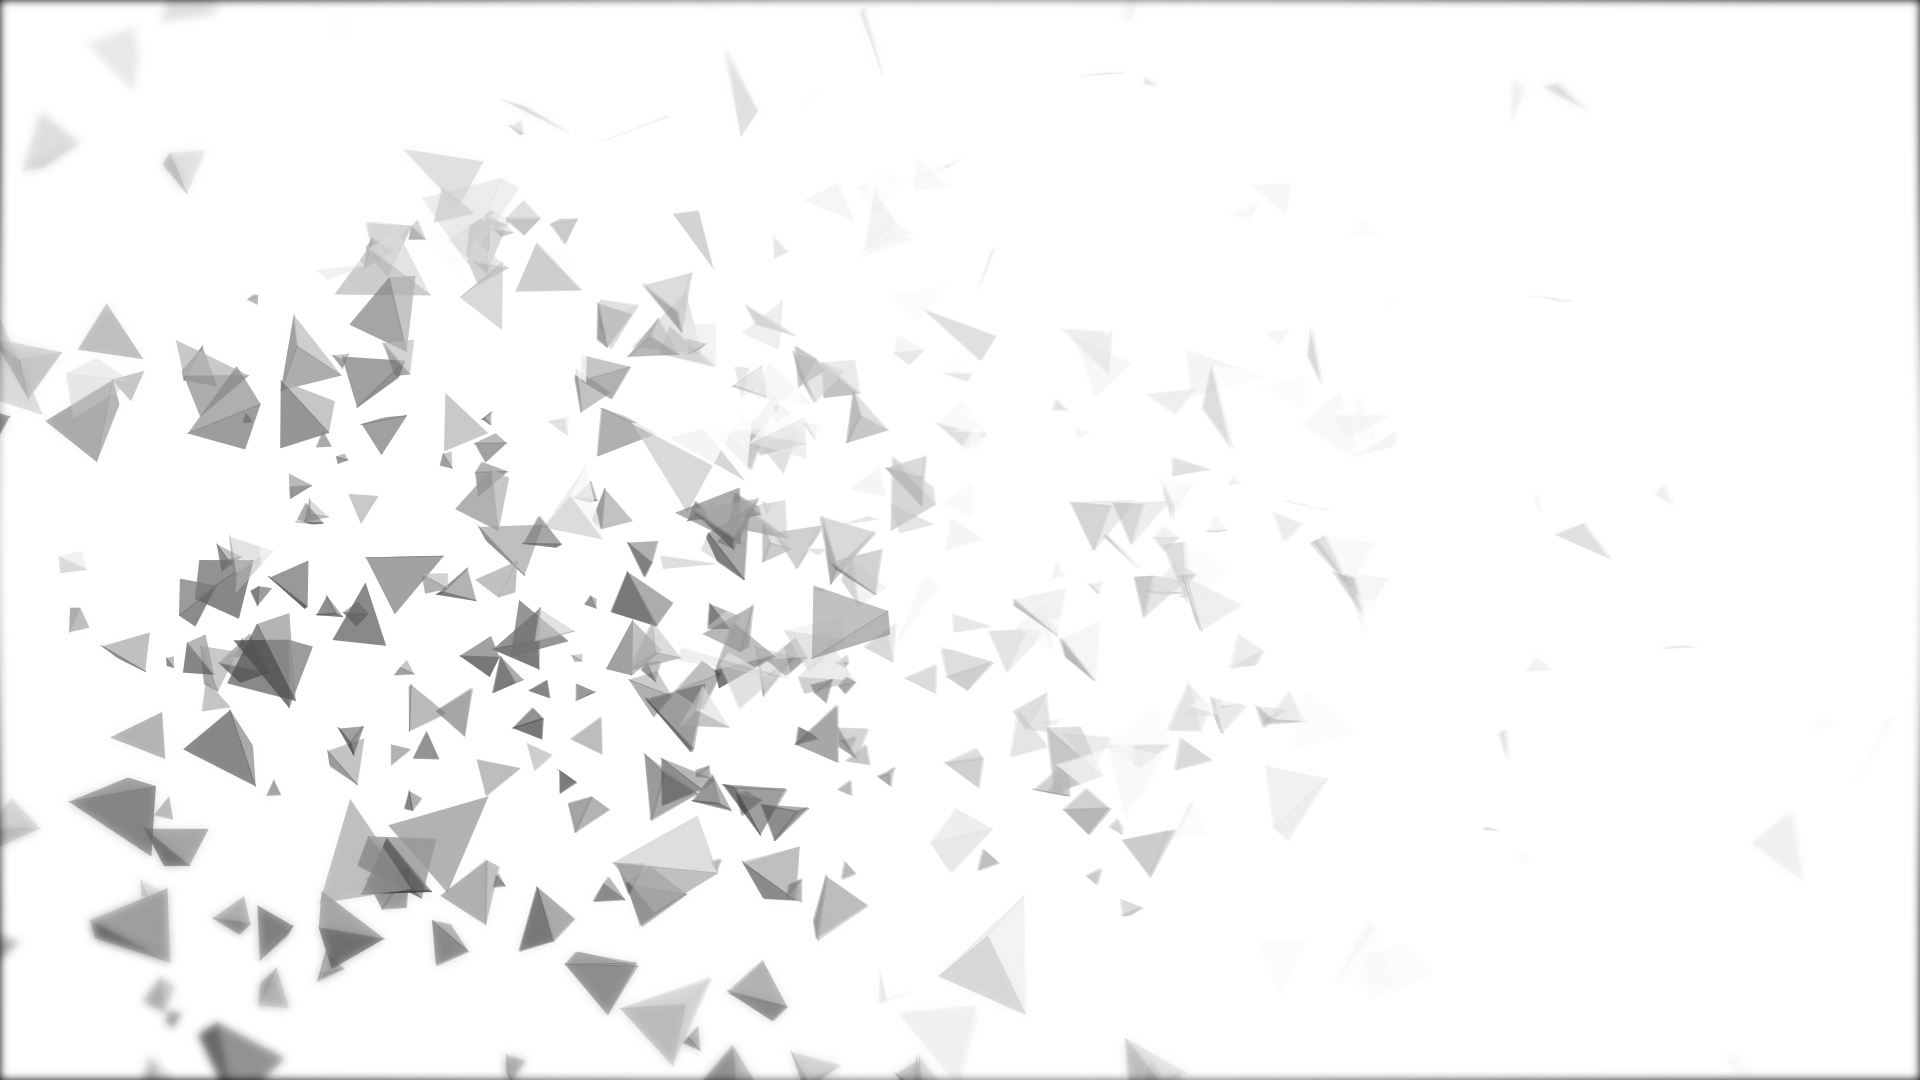 Royalty Free Video Abstract Business 3d Shape Background